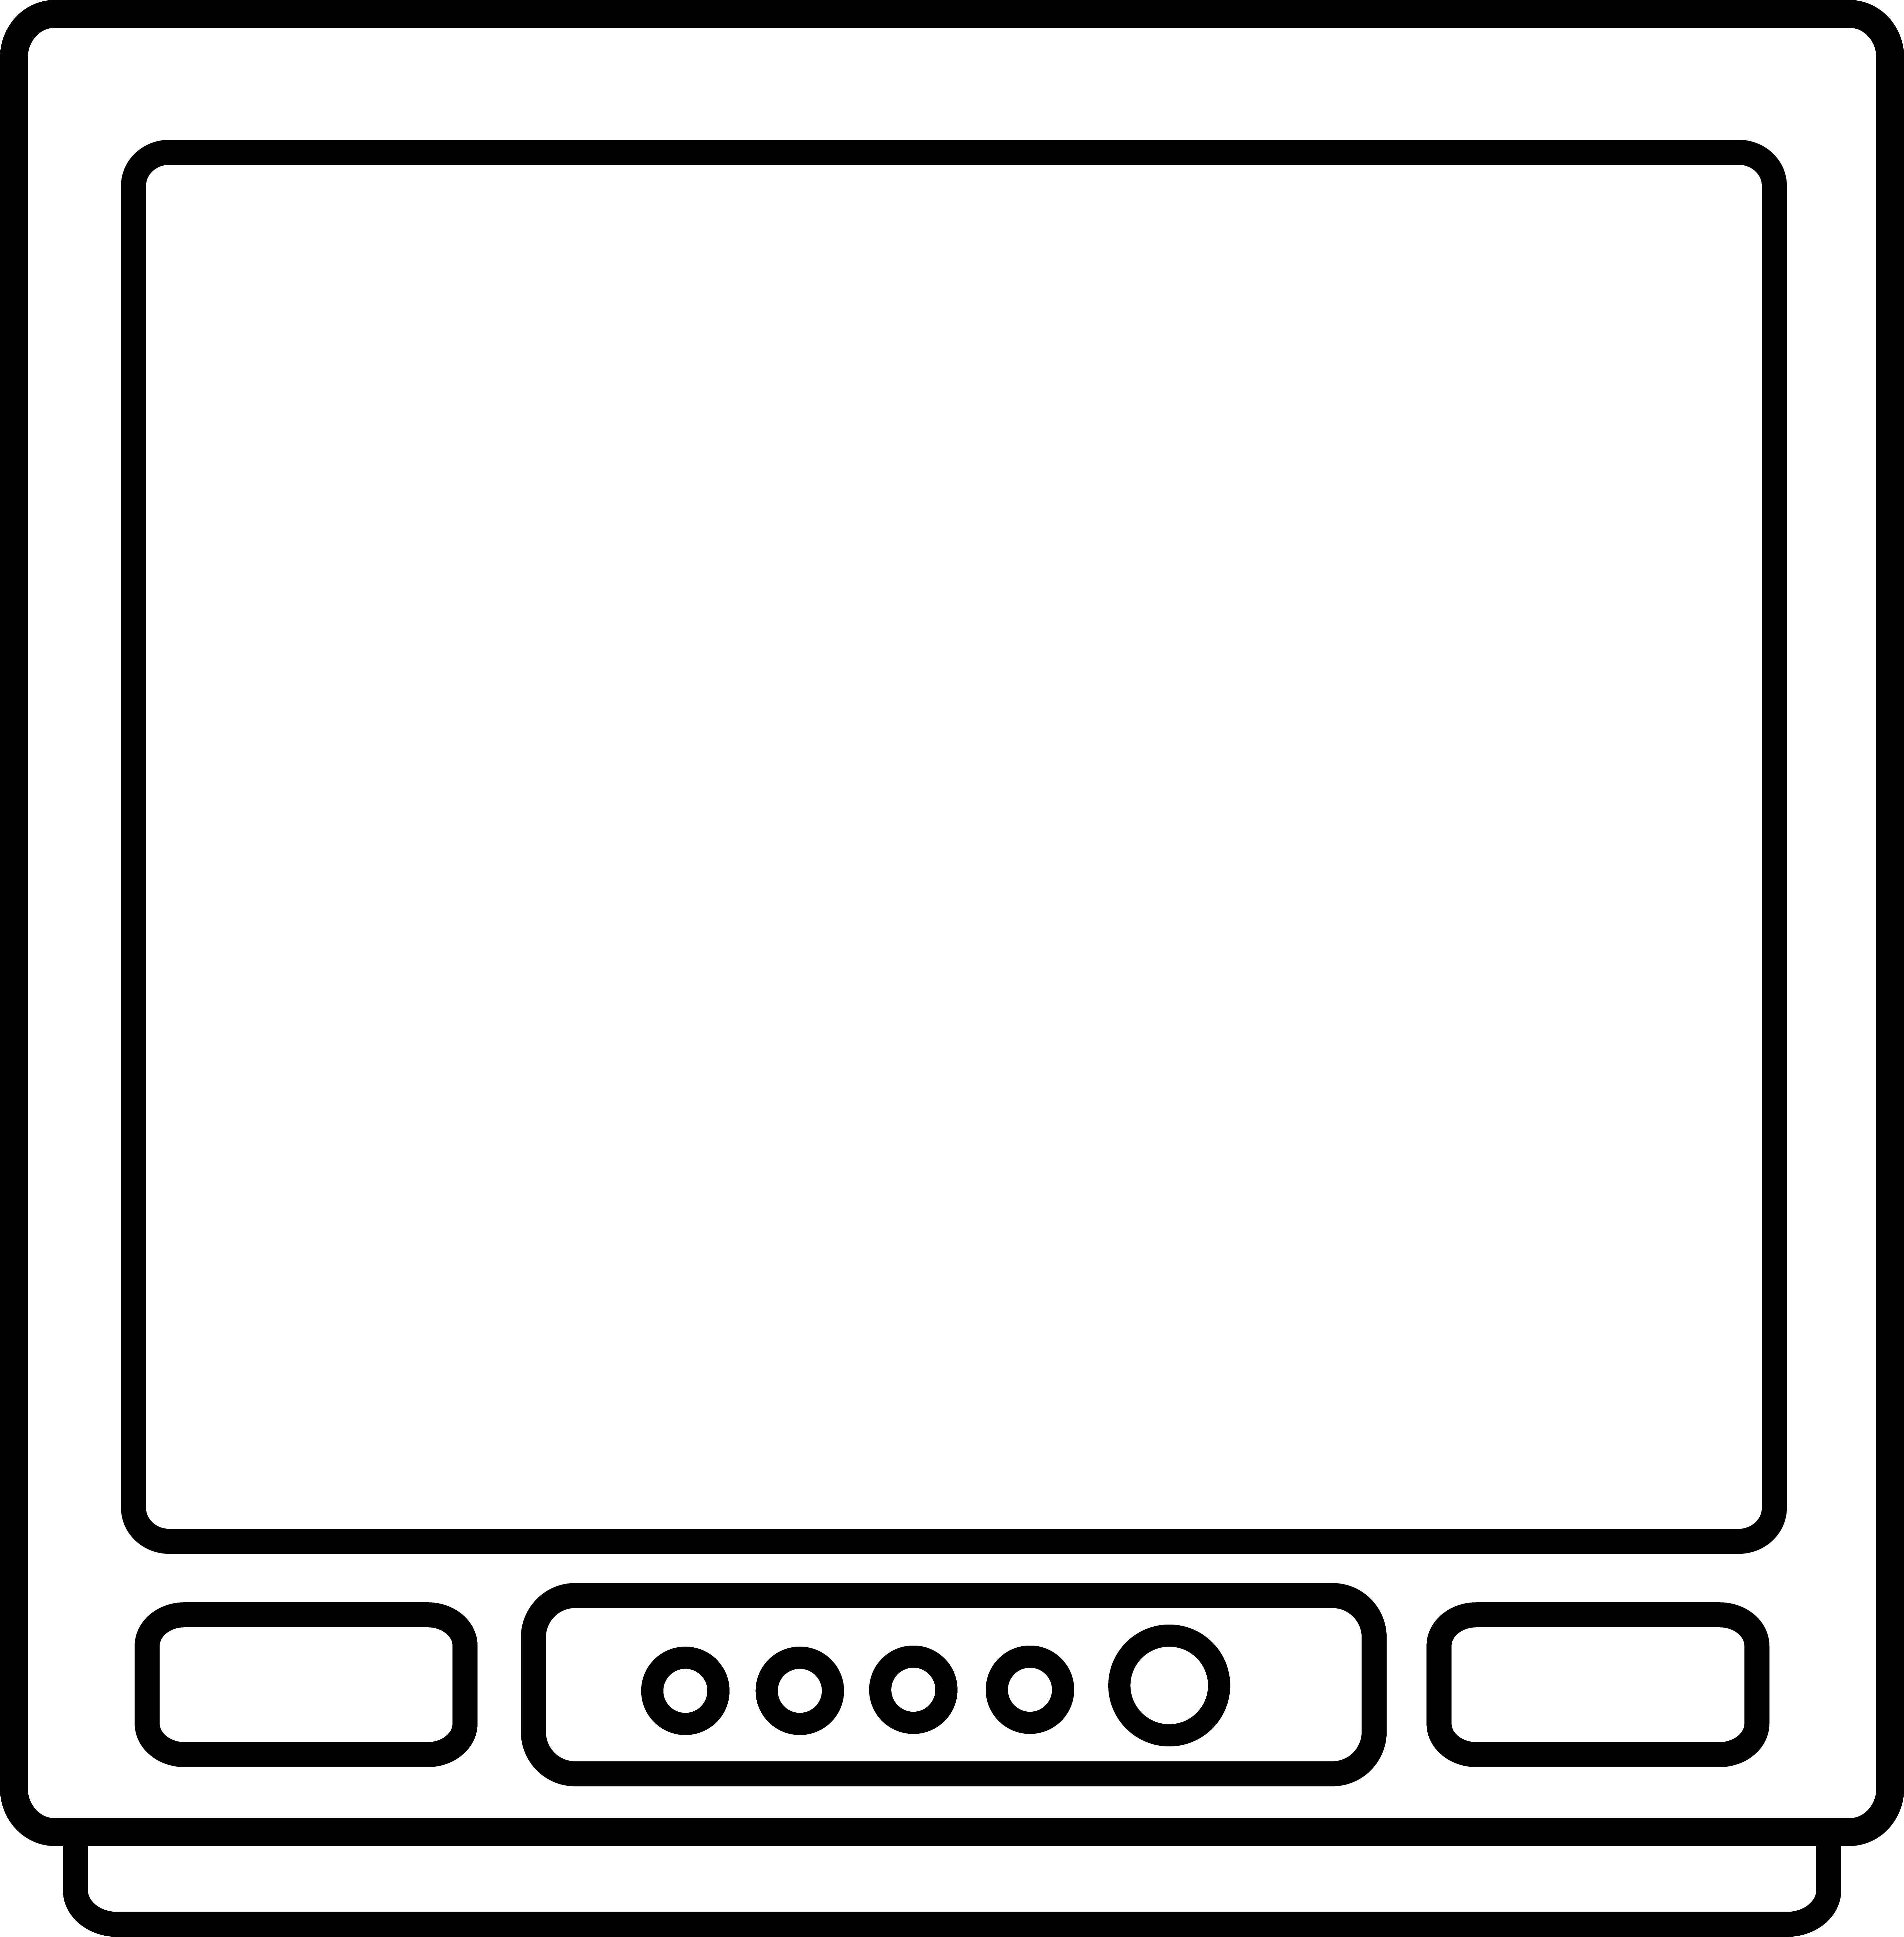 appliances television coloring pages - photo #23